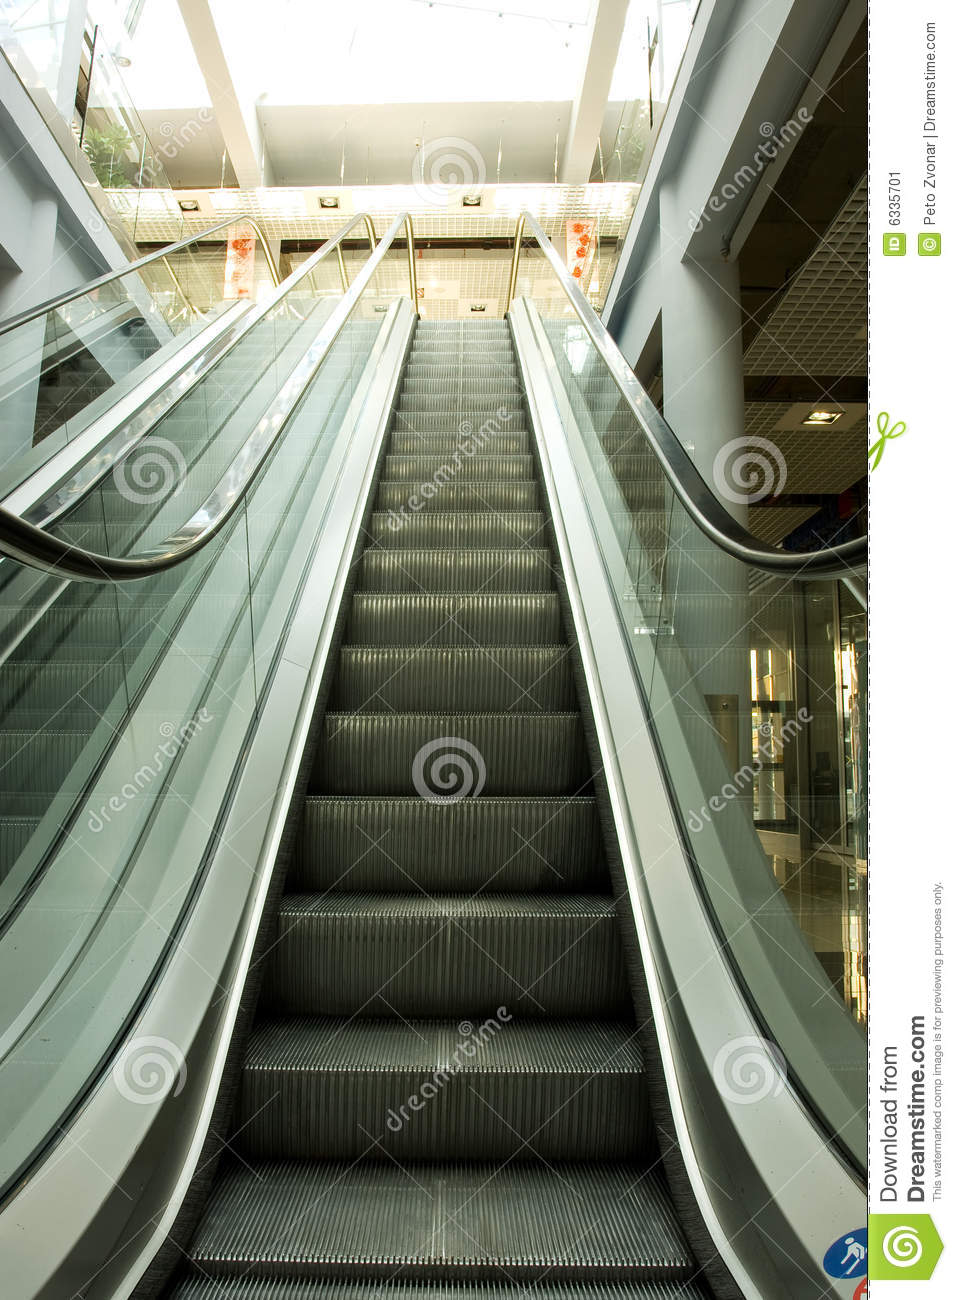 'Down the Up Escalator' Author Barbara Garson On How the 99% Live in the Great Recession